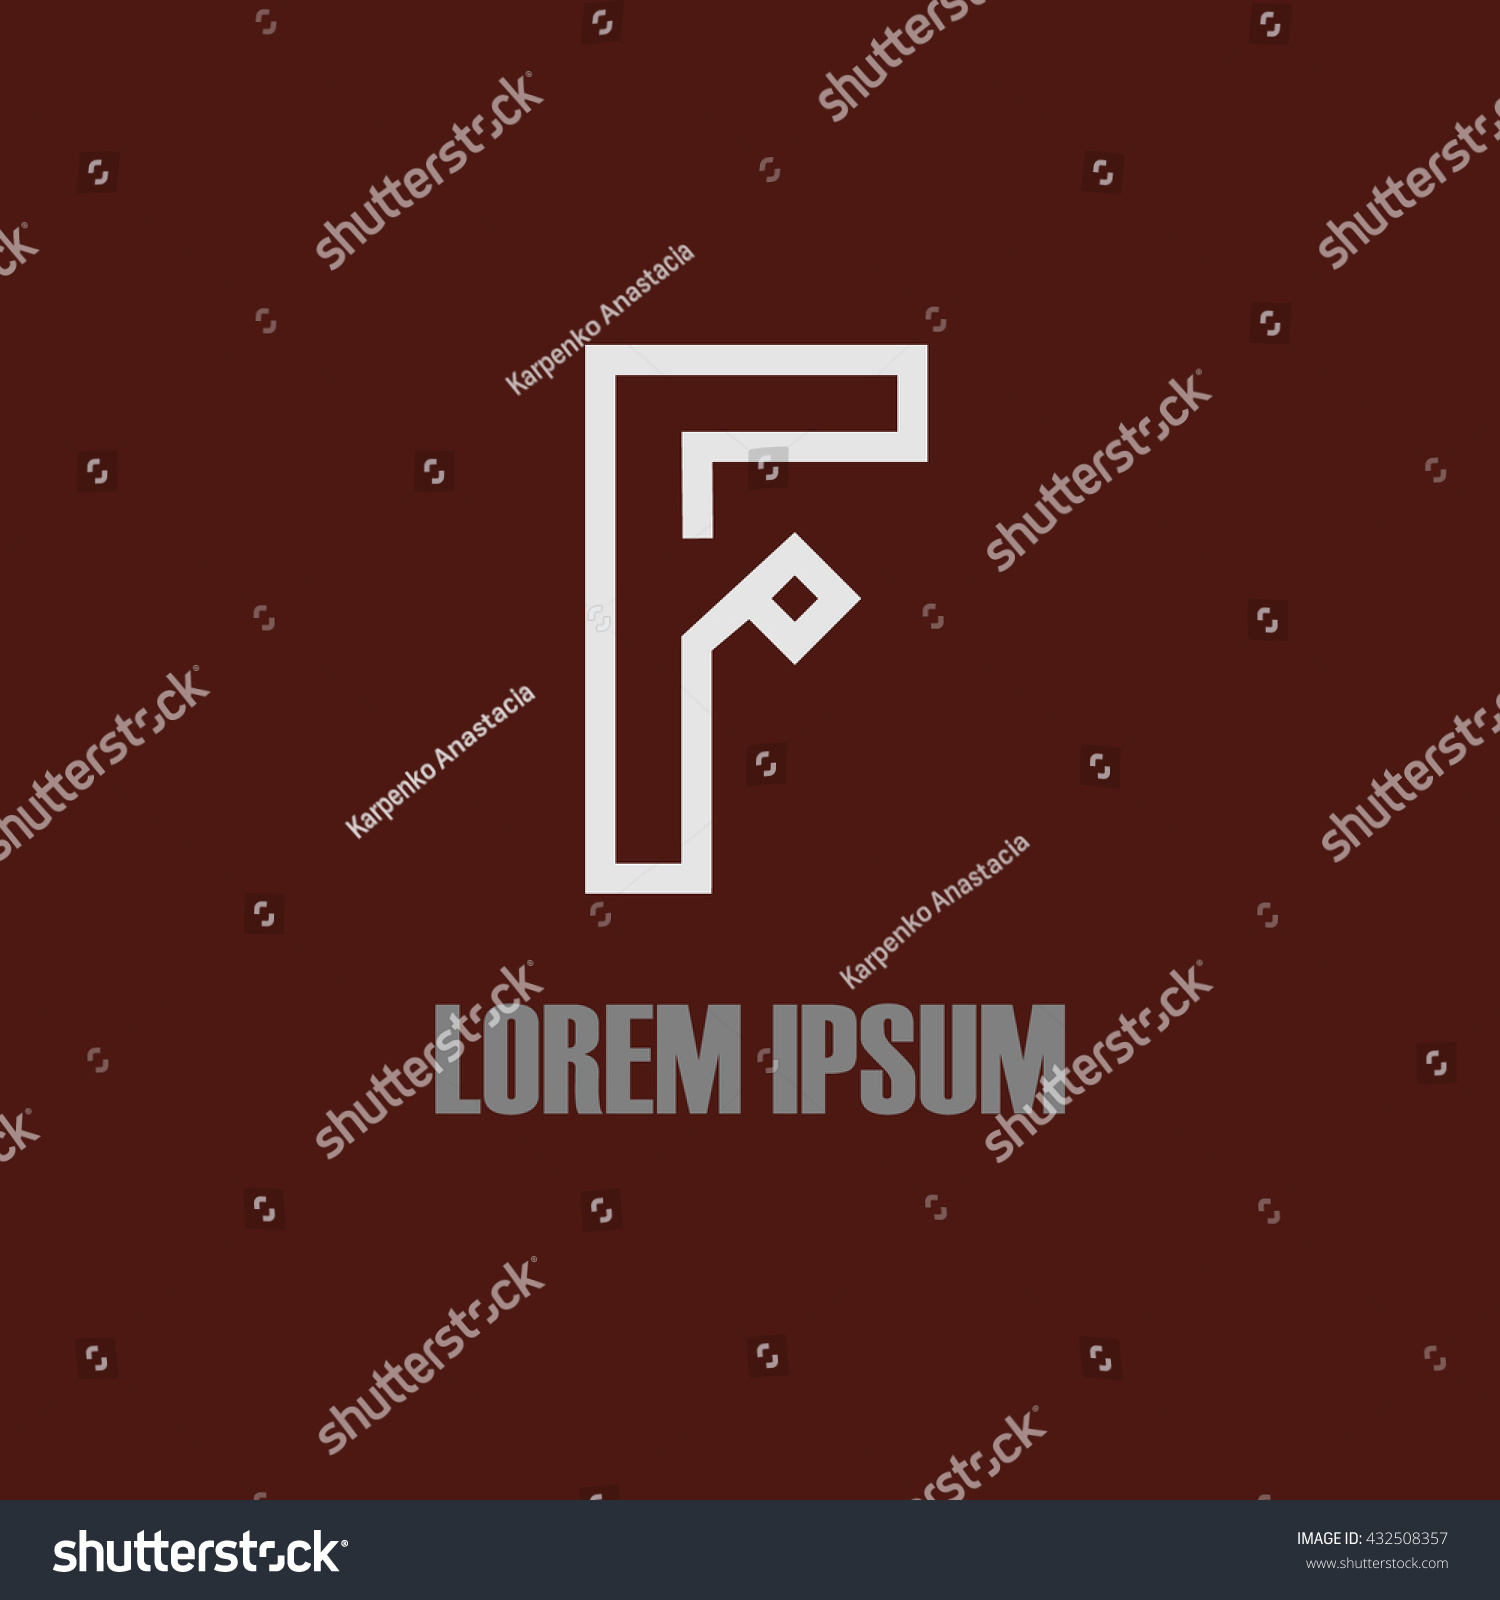 Tj initial luxury ornament monogram logo stock vector - Similar Images To Logo Letters F Stock Vector